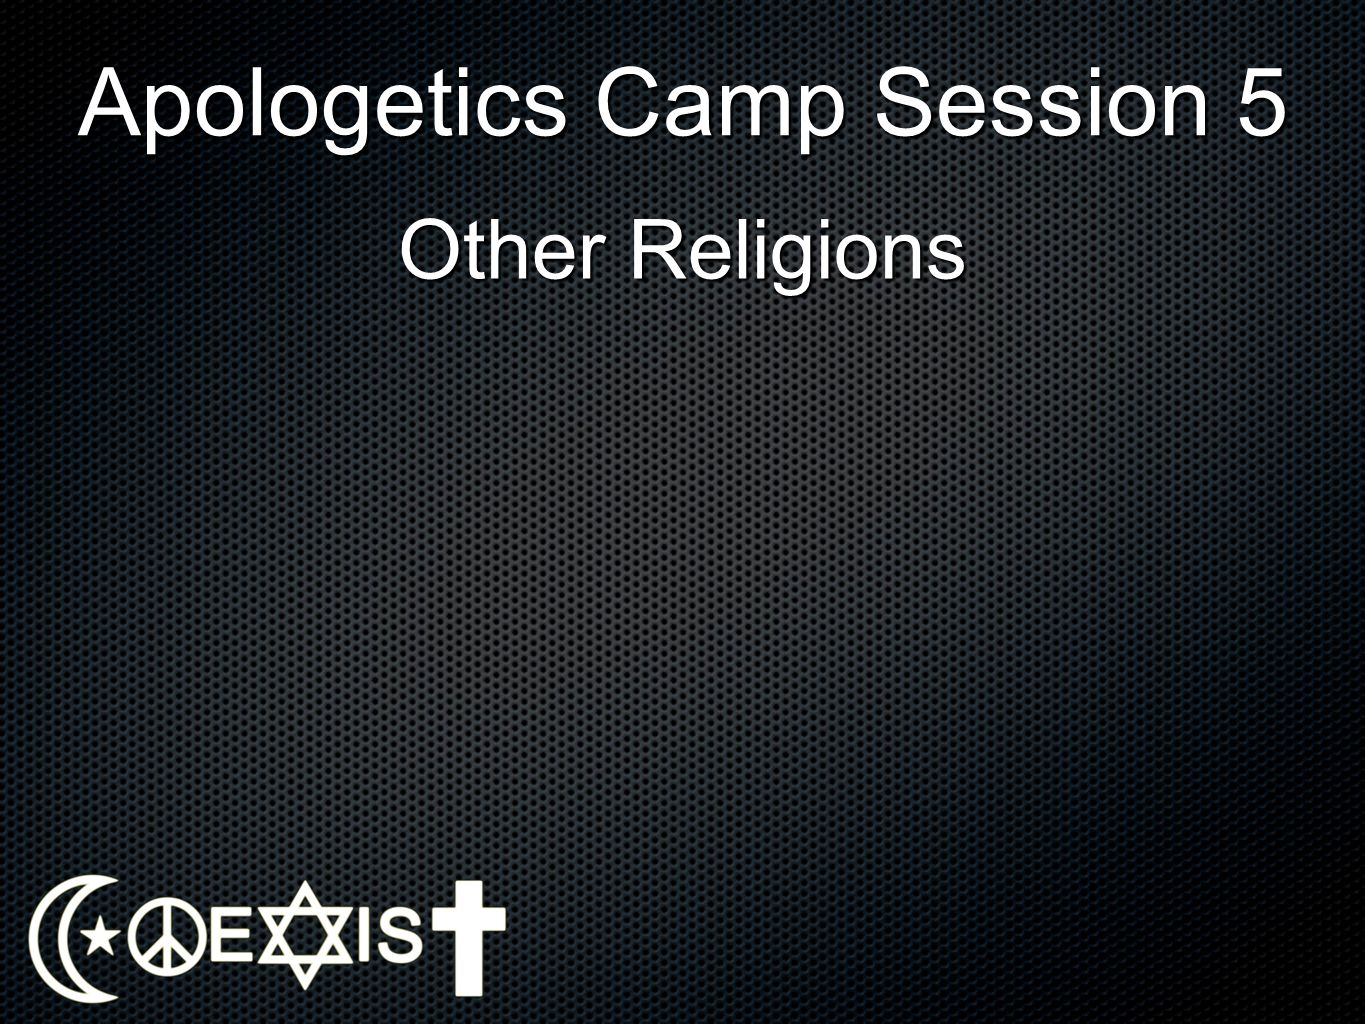 Apologetics Camp Session 5